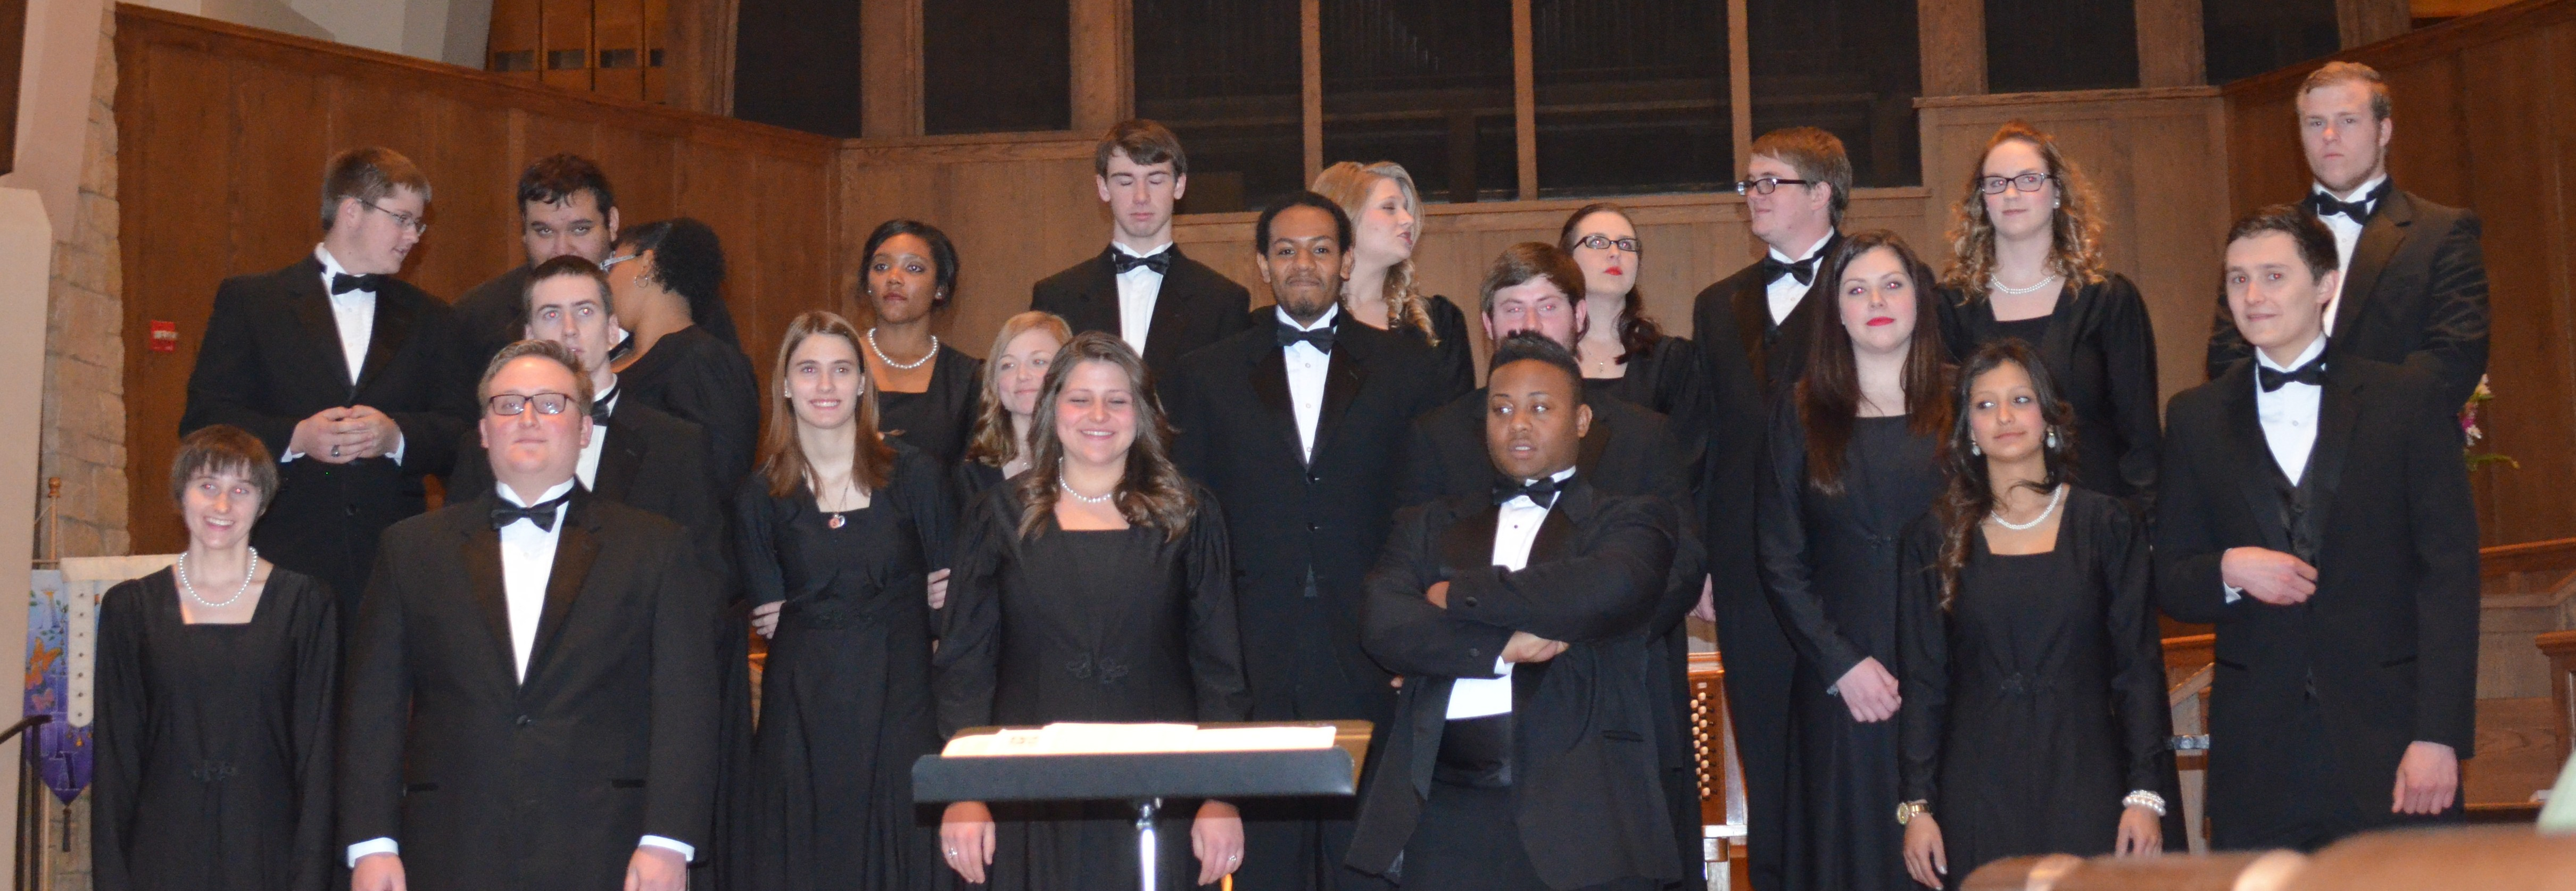 Photo by SONNET RELPH | The Ranger The AC concert choir performed April 25 at St. Andrew's Episcopal Church.